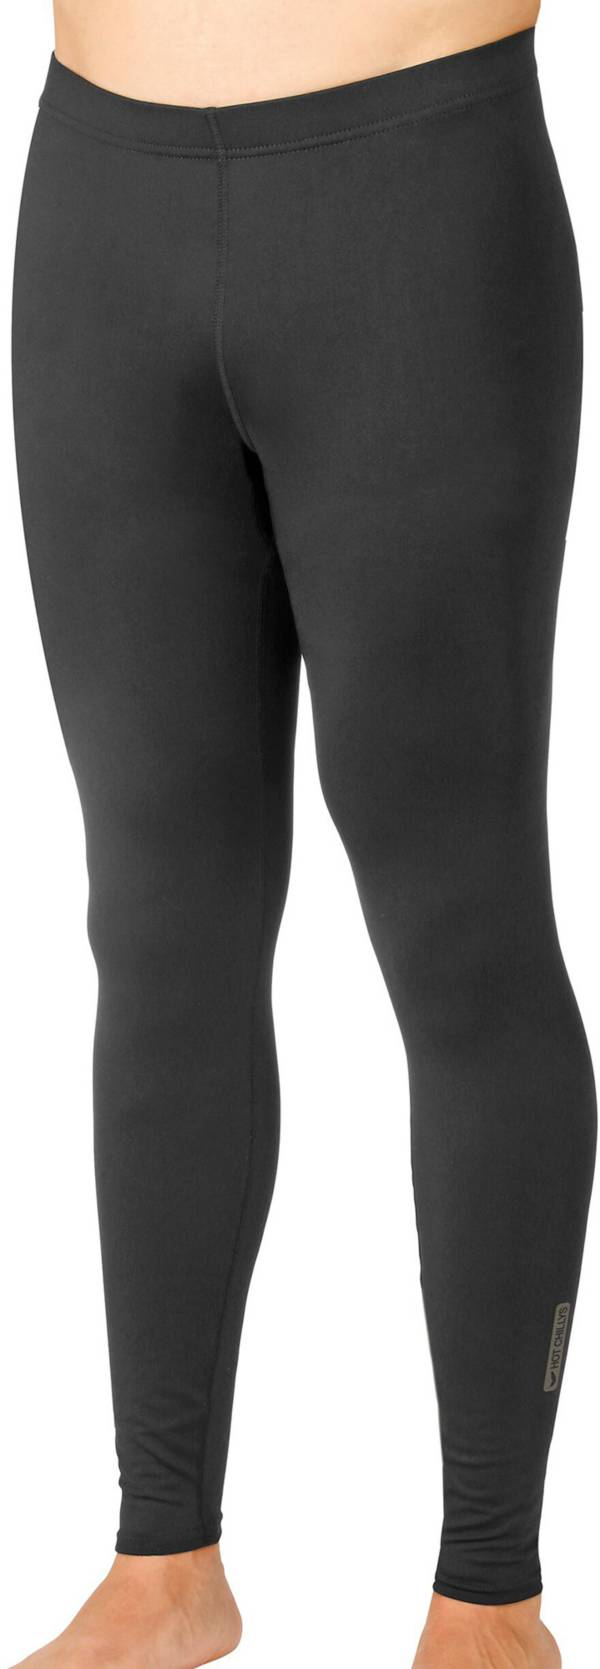 Hot Chillys Men's Micro-Elite Chamois Pants product image